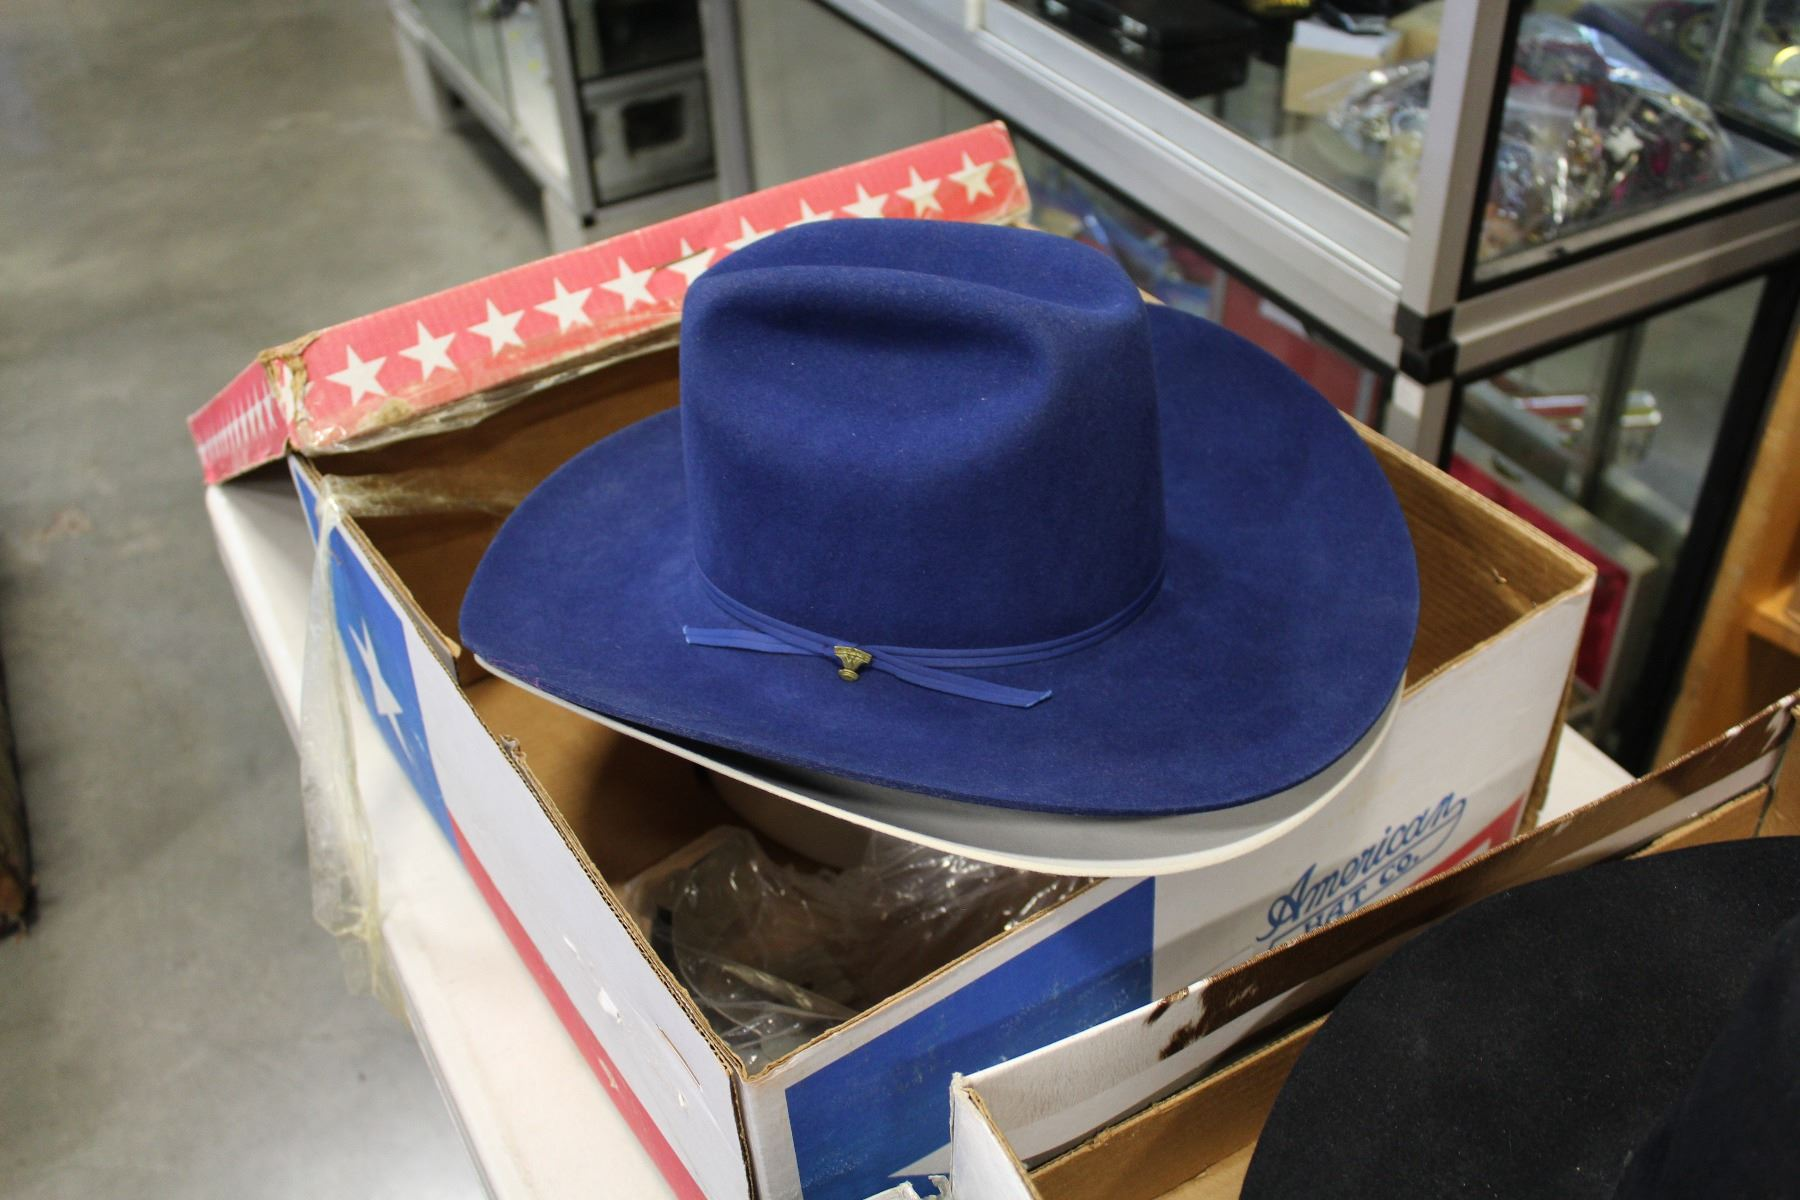 BEAVER HATS SIZE 7 5 COWBOY HAT RISITOL SIZE 6 BEAVER HAT AND AMERICAN HAT  COMPANY COWBOY HAT